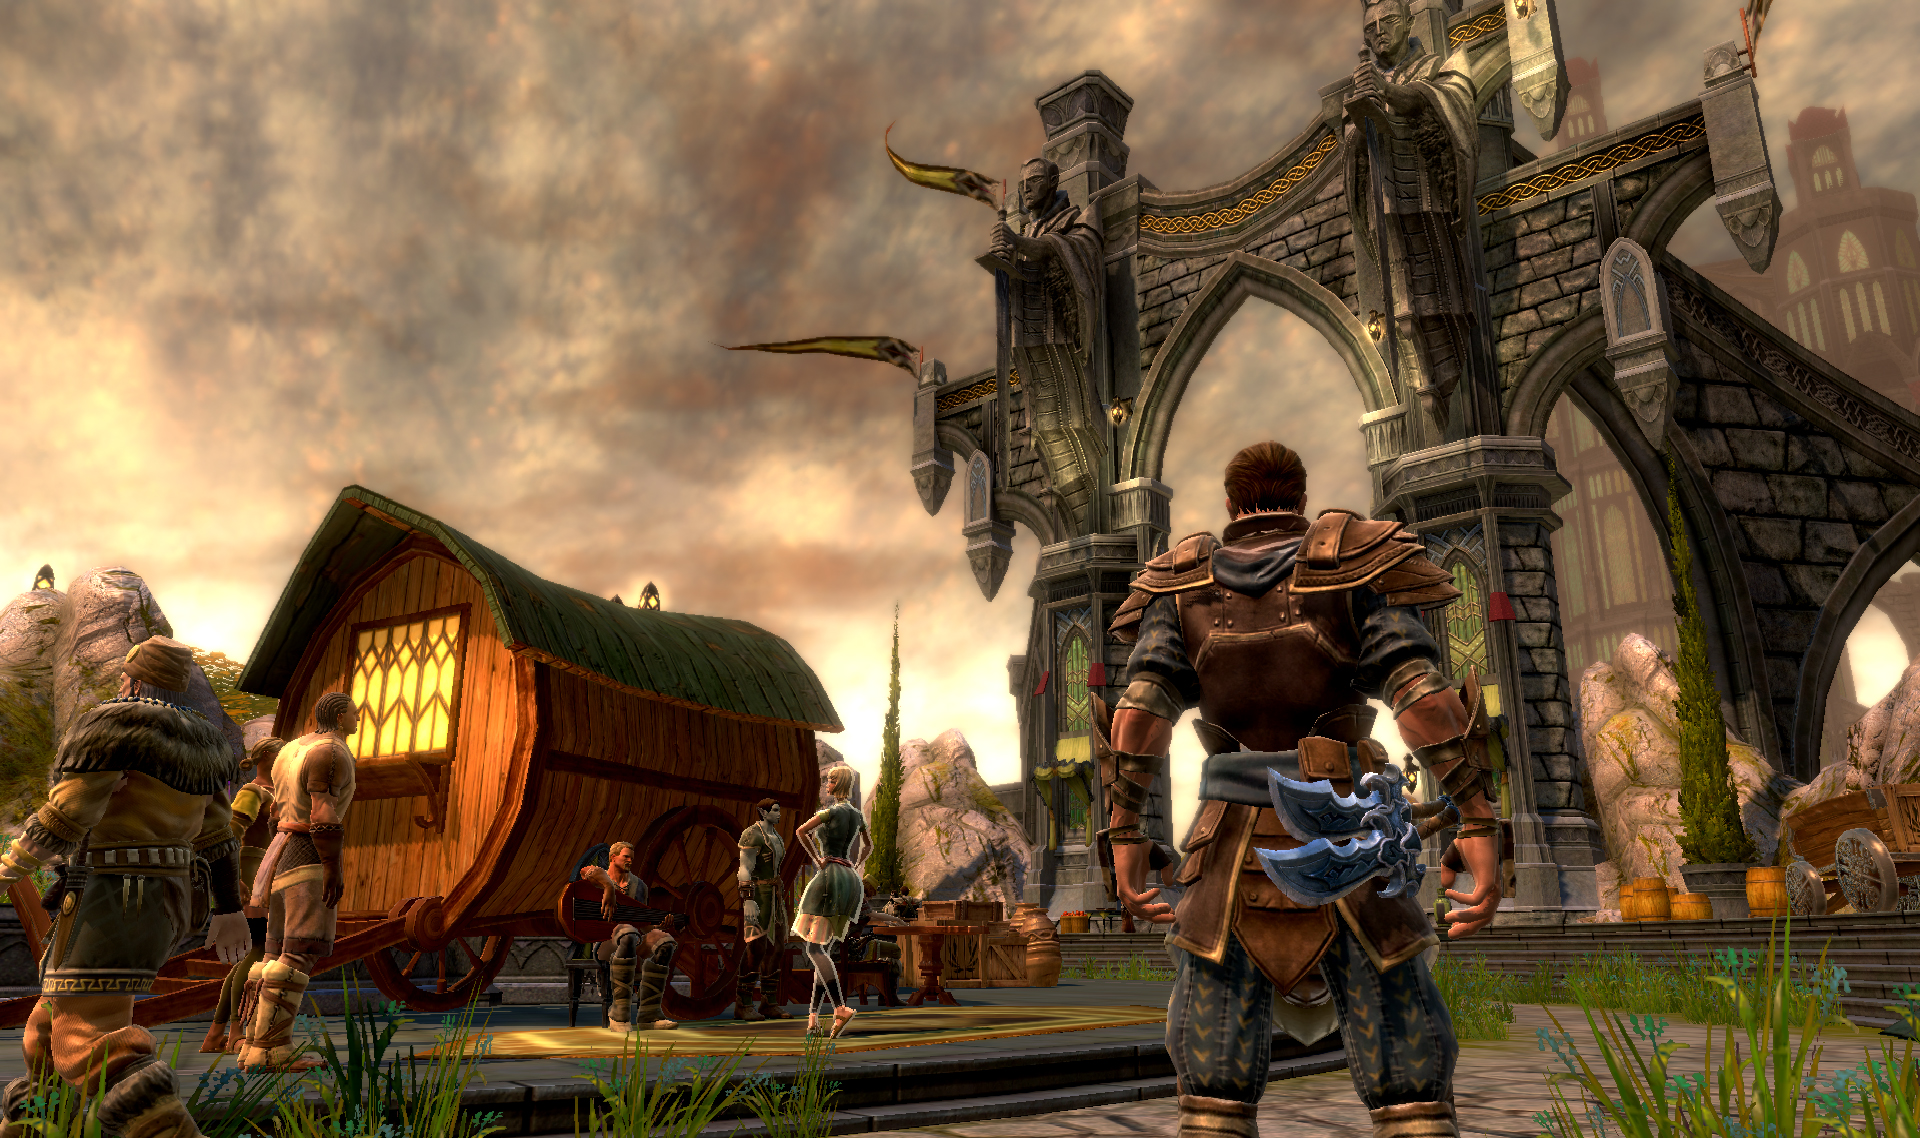 Kingdoms Of Amalur: Reckoning Gets Backwards Compatibility On Xbox One